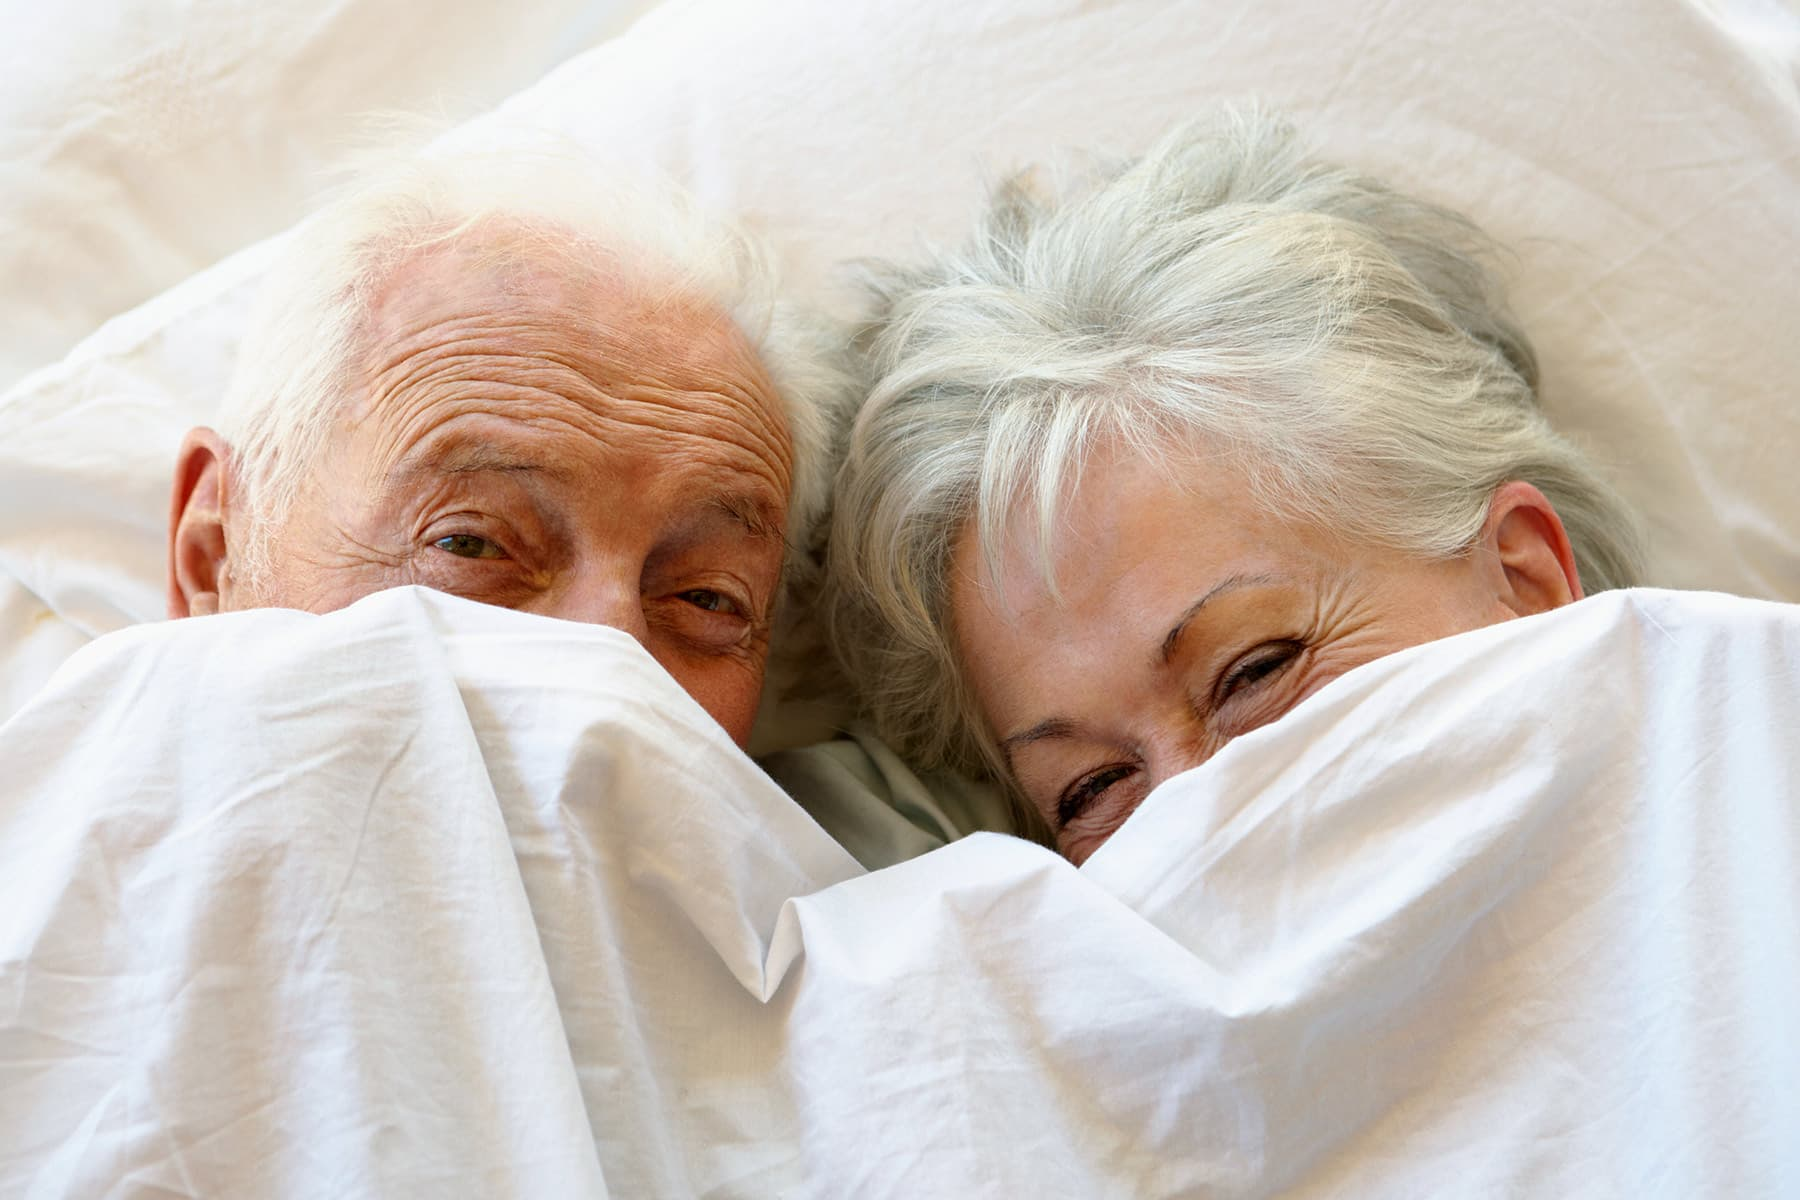 Visual erotic aids for older married couples